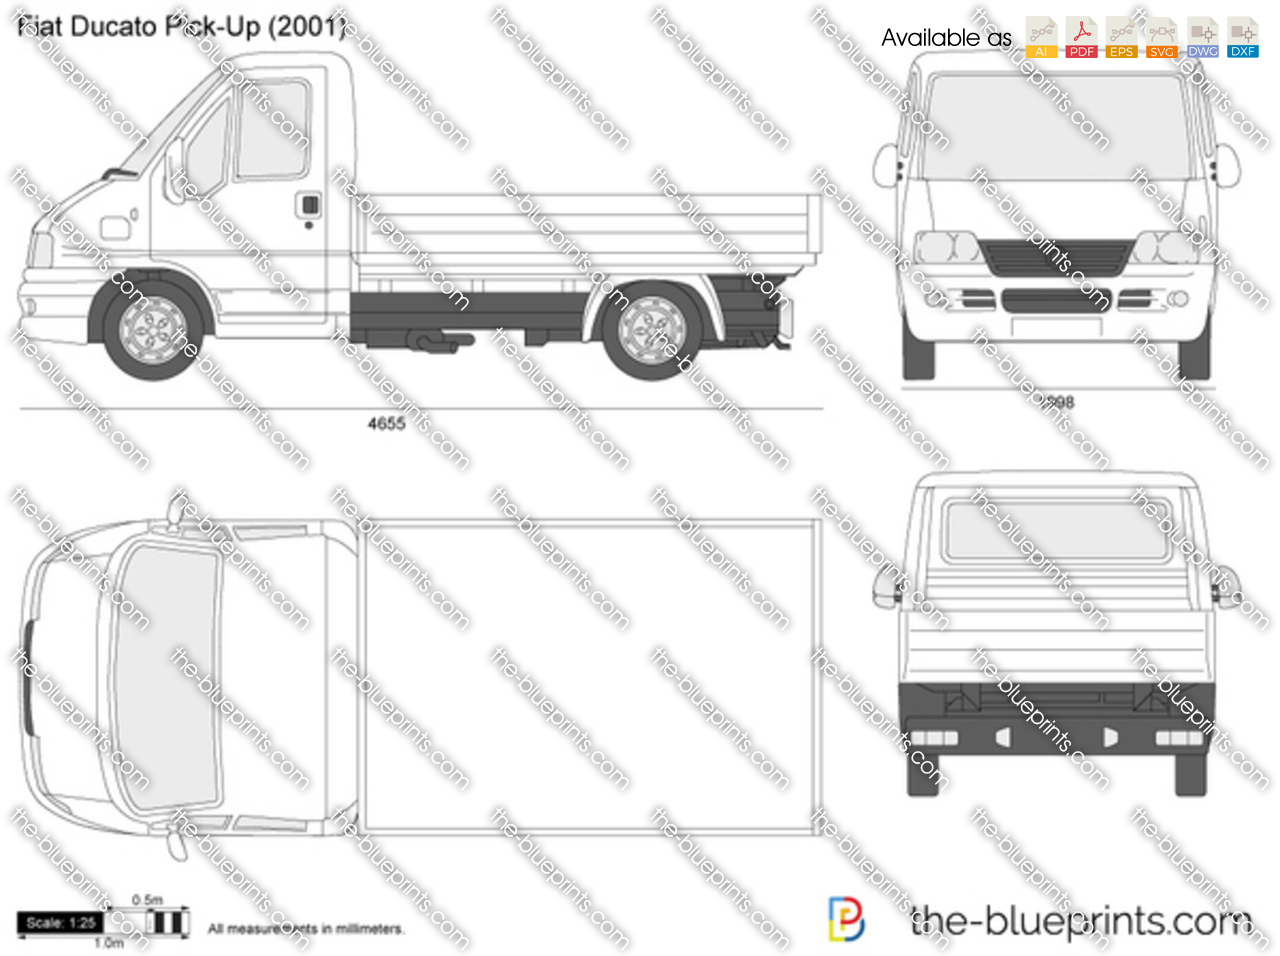 fiat ducato pick up vector drawing. Black Bedroom Furniture Sets. Home Design Ideas